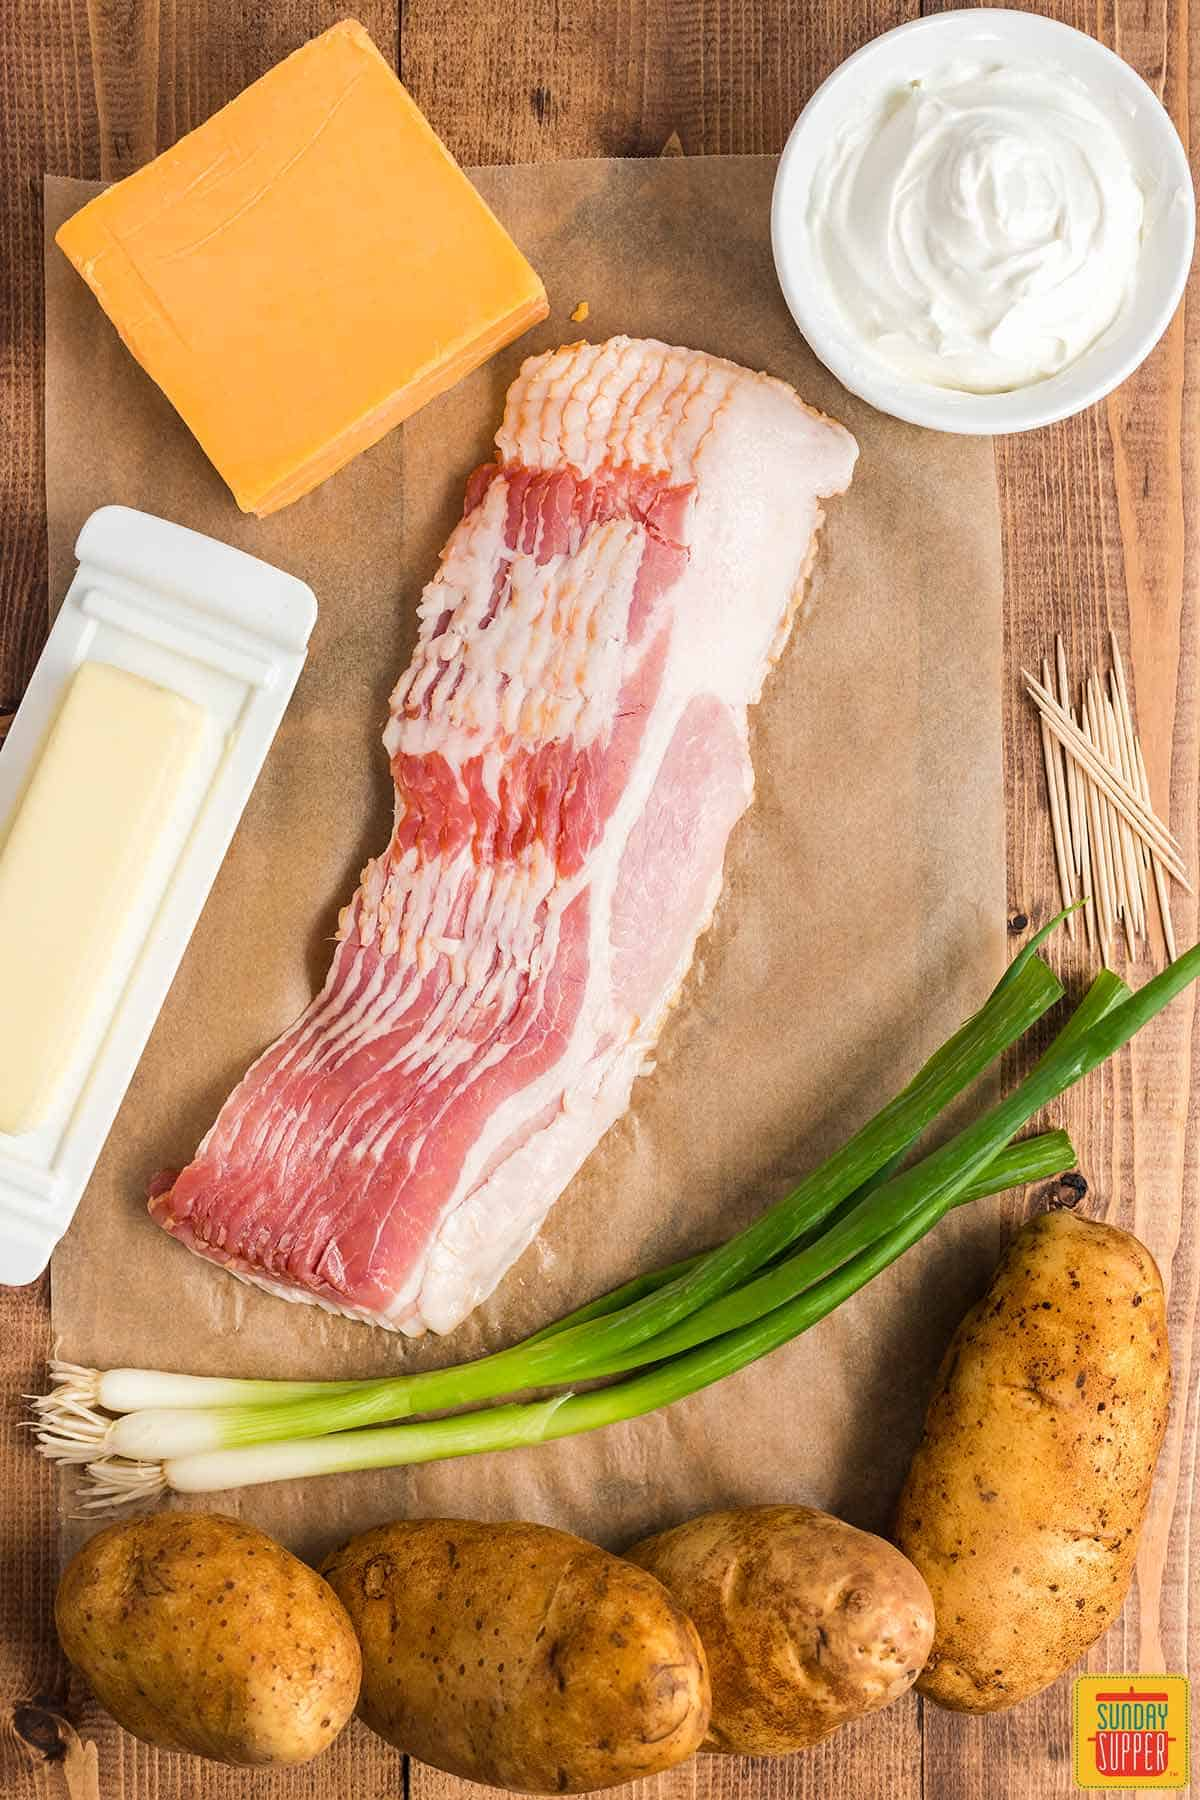 Ingredients laid out on a wooden surface to make potatoes wrapped in bacon: a block of cheddar cheese, a stick of butter, several slices of uncooked bacon, fresh green onions, russet potatoes, and a white bowl of sour cream, plus a stack of toothpicks